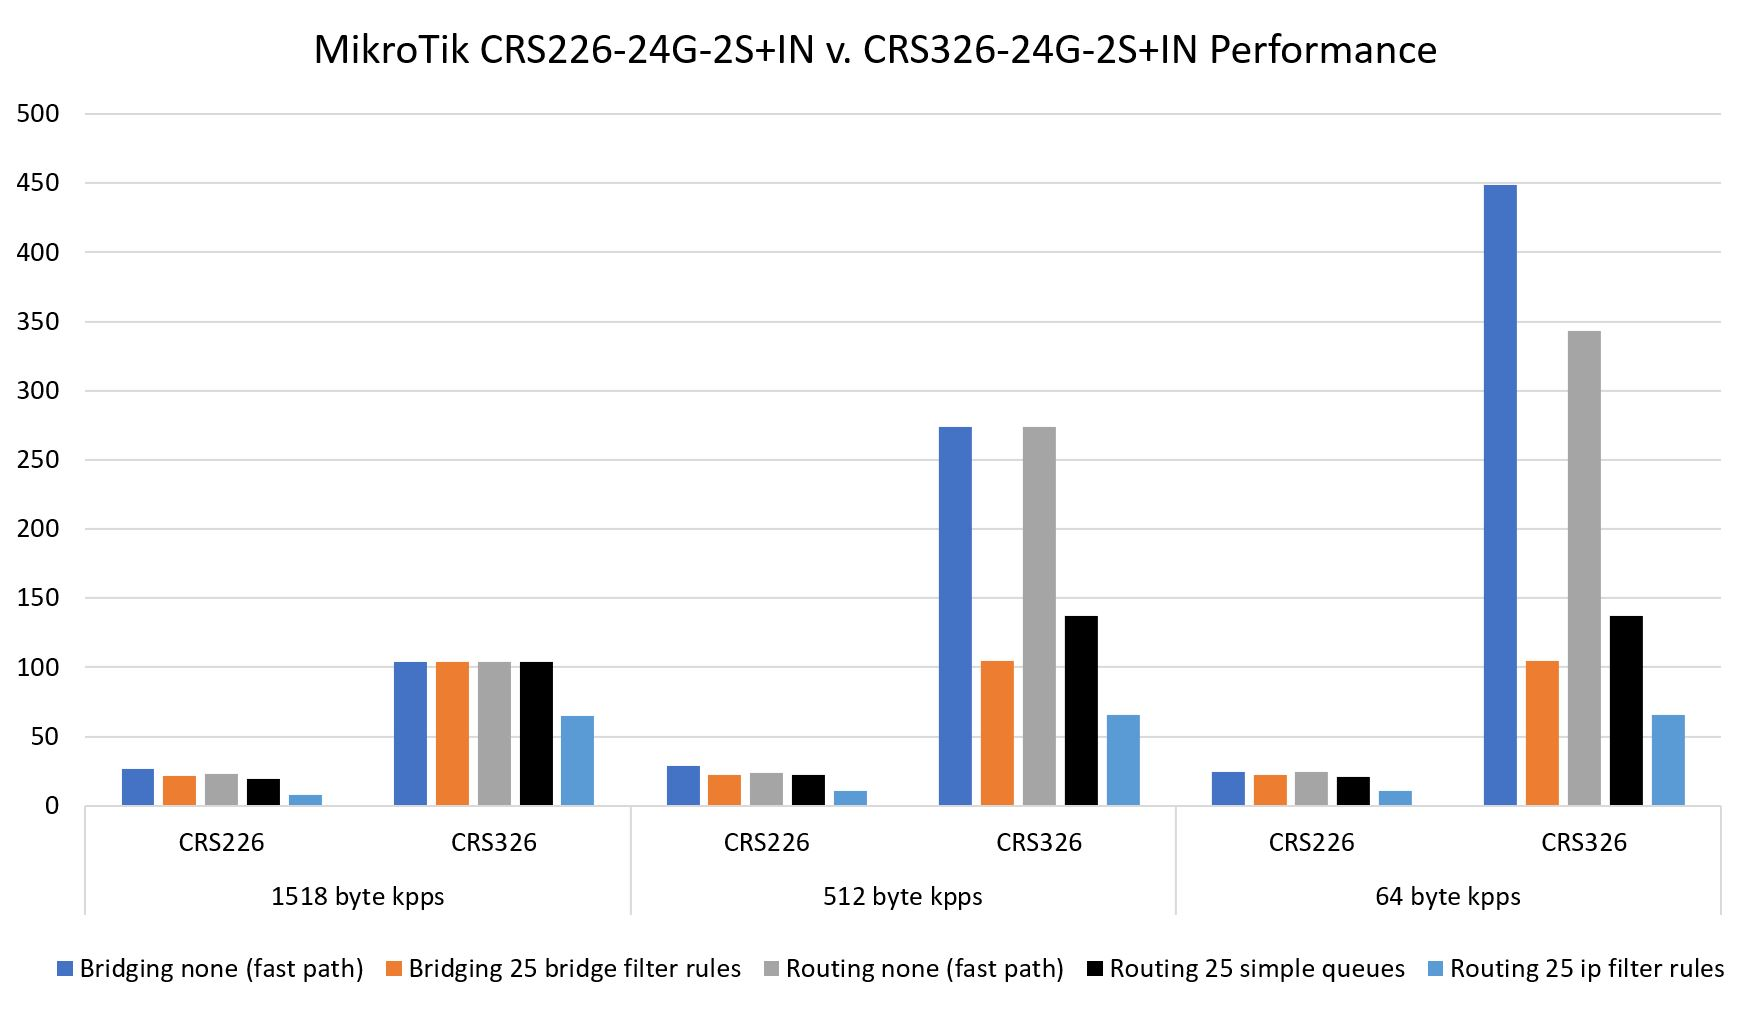 MikroTik CRS326 24G 2S+IN Performance Kpps